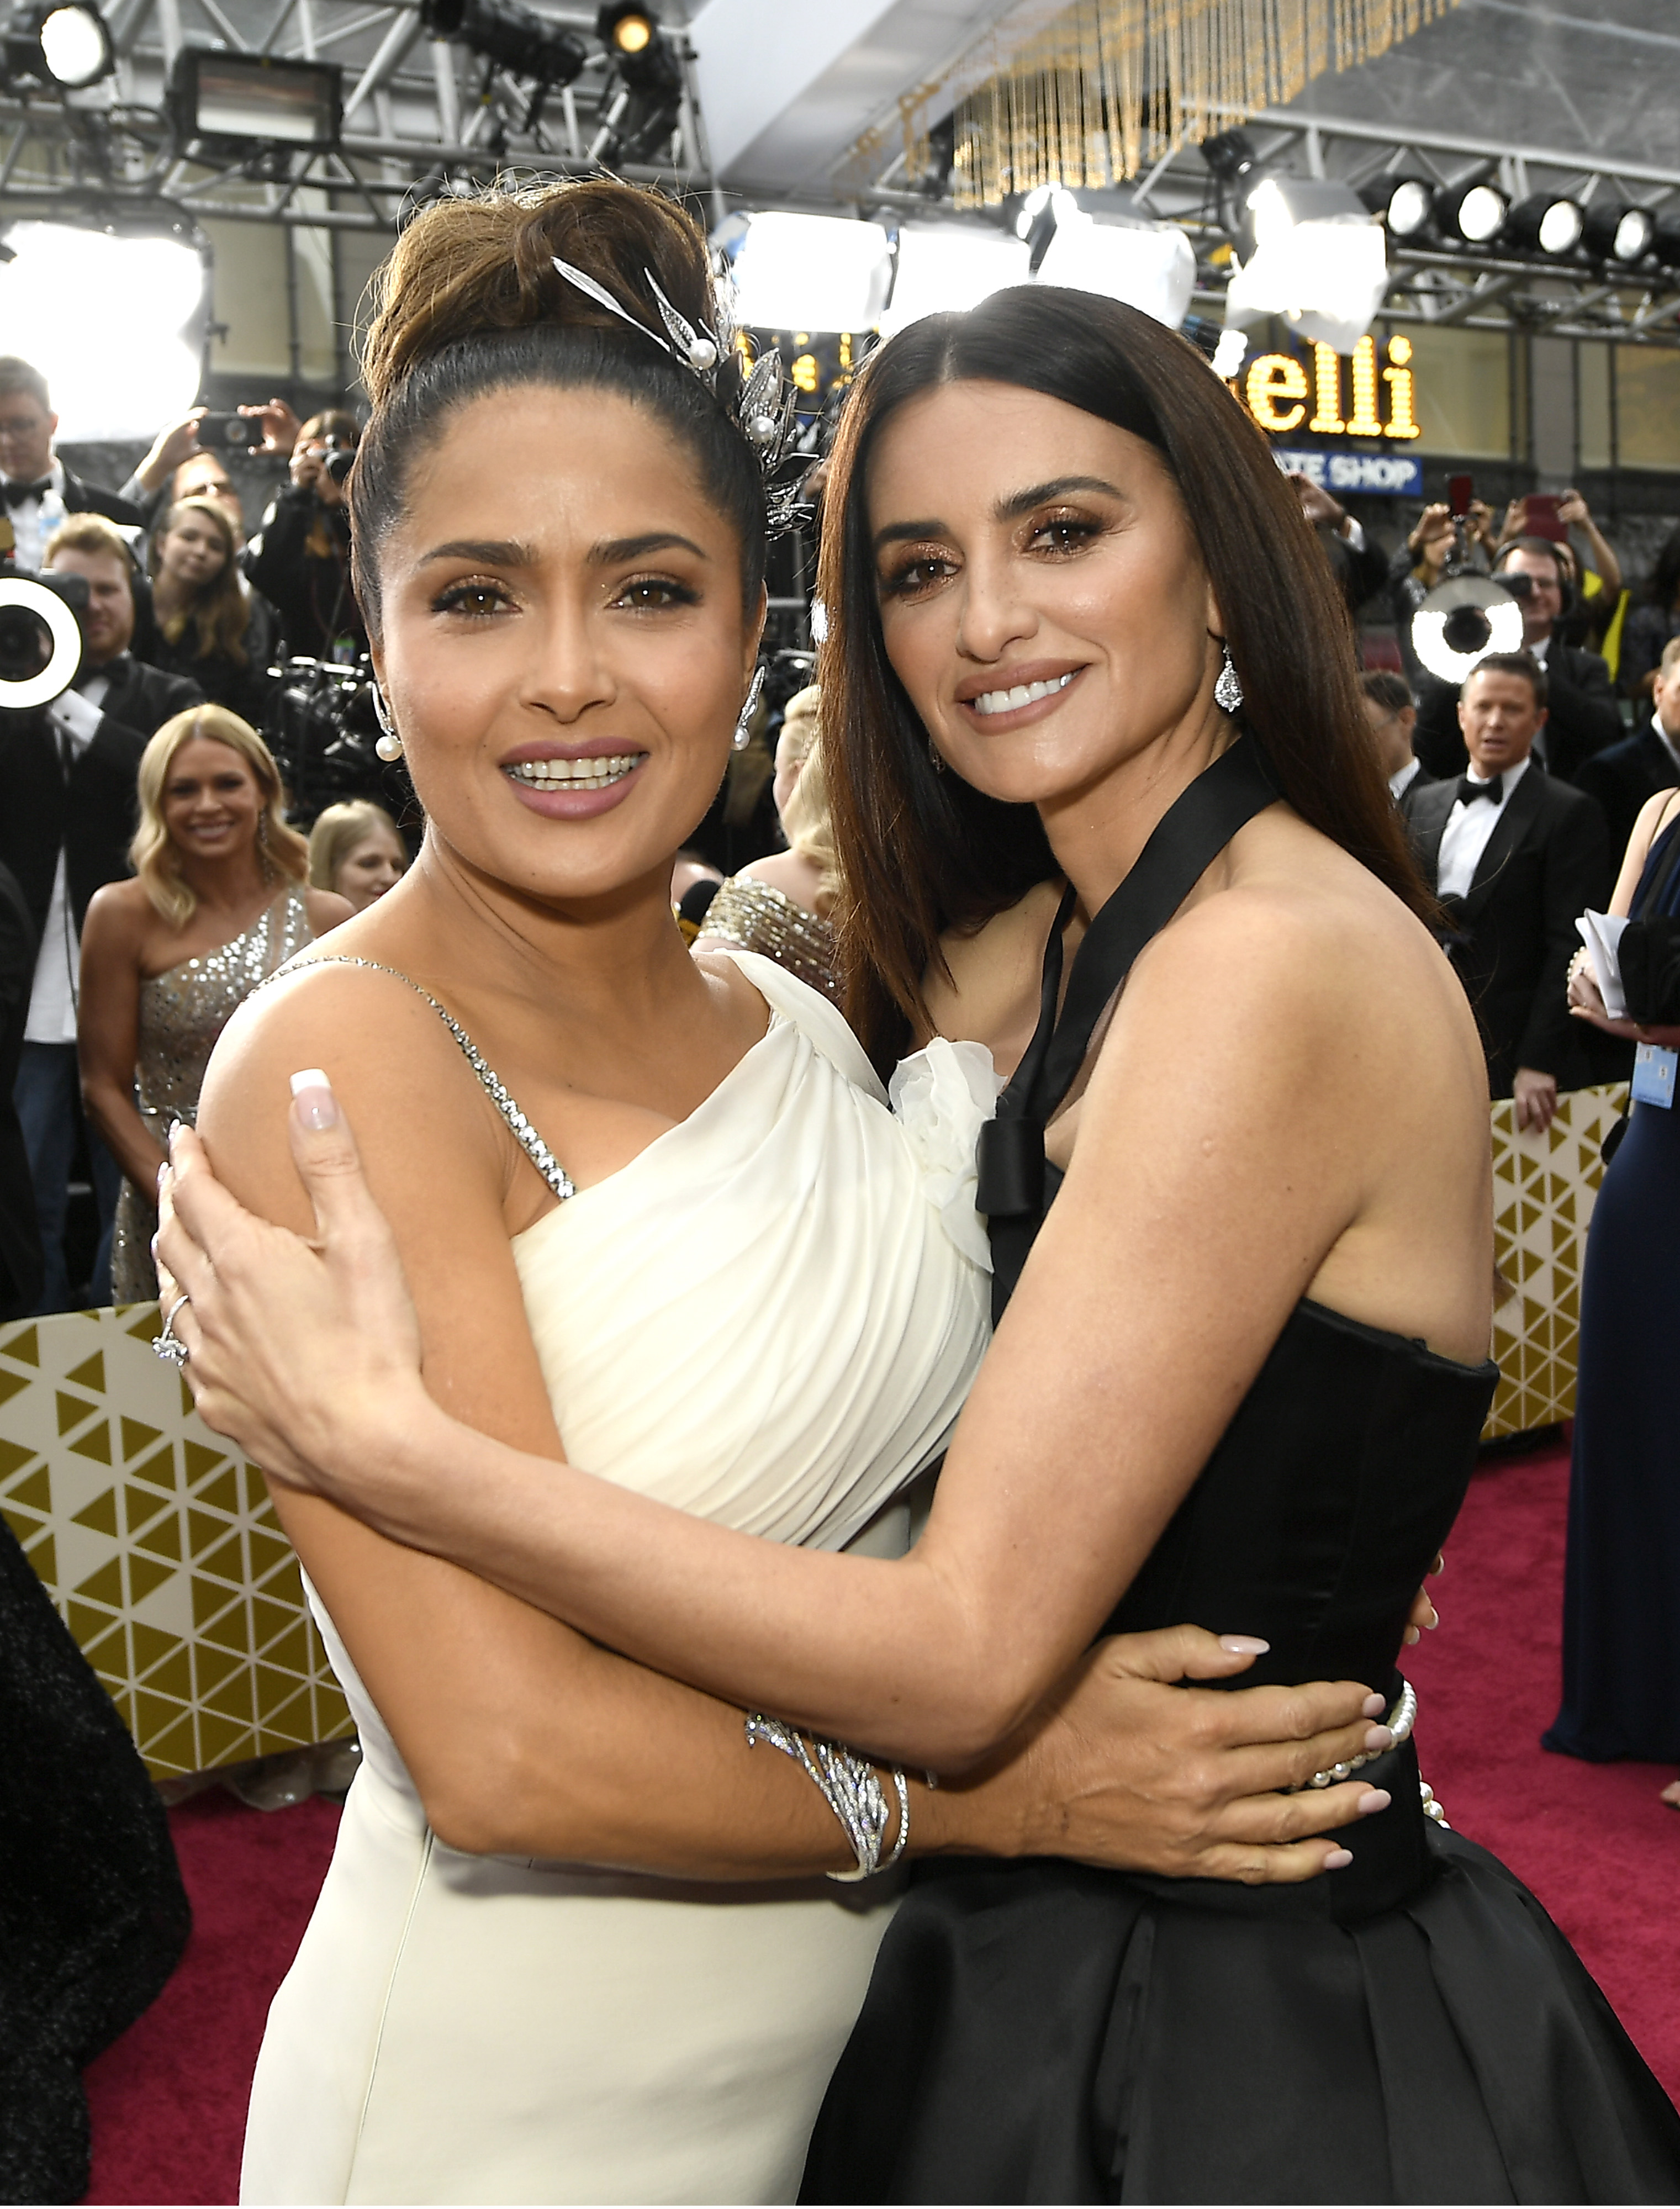 HOLLYWOOD, CALIFORNIA - FEBRUARY 09: (L-R) Salma Hayek and  Penélope Cruz attend the 92nd Annual Academy Awards at Hollywood and Highland on February 09, 2020 in Hollywood, California. (Photo by Kevork Djansezian/Getty Images)